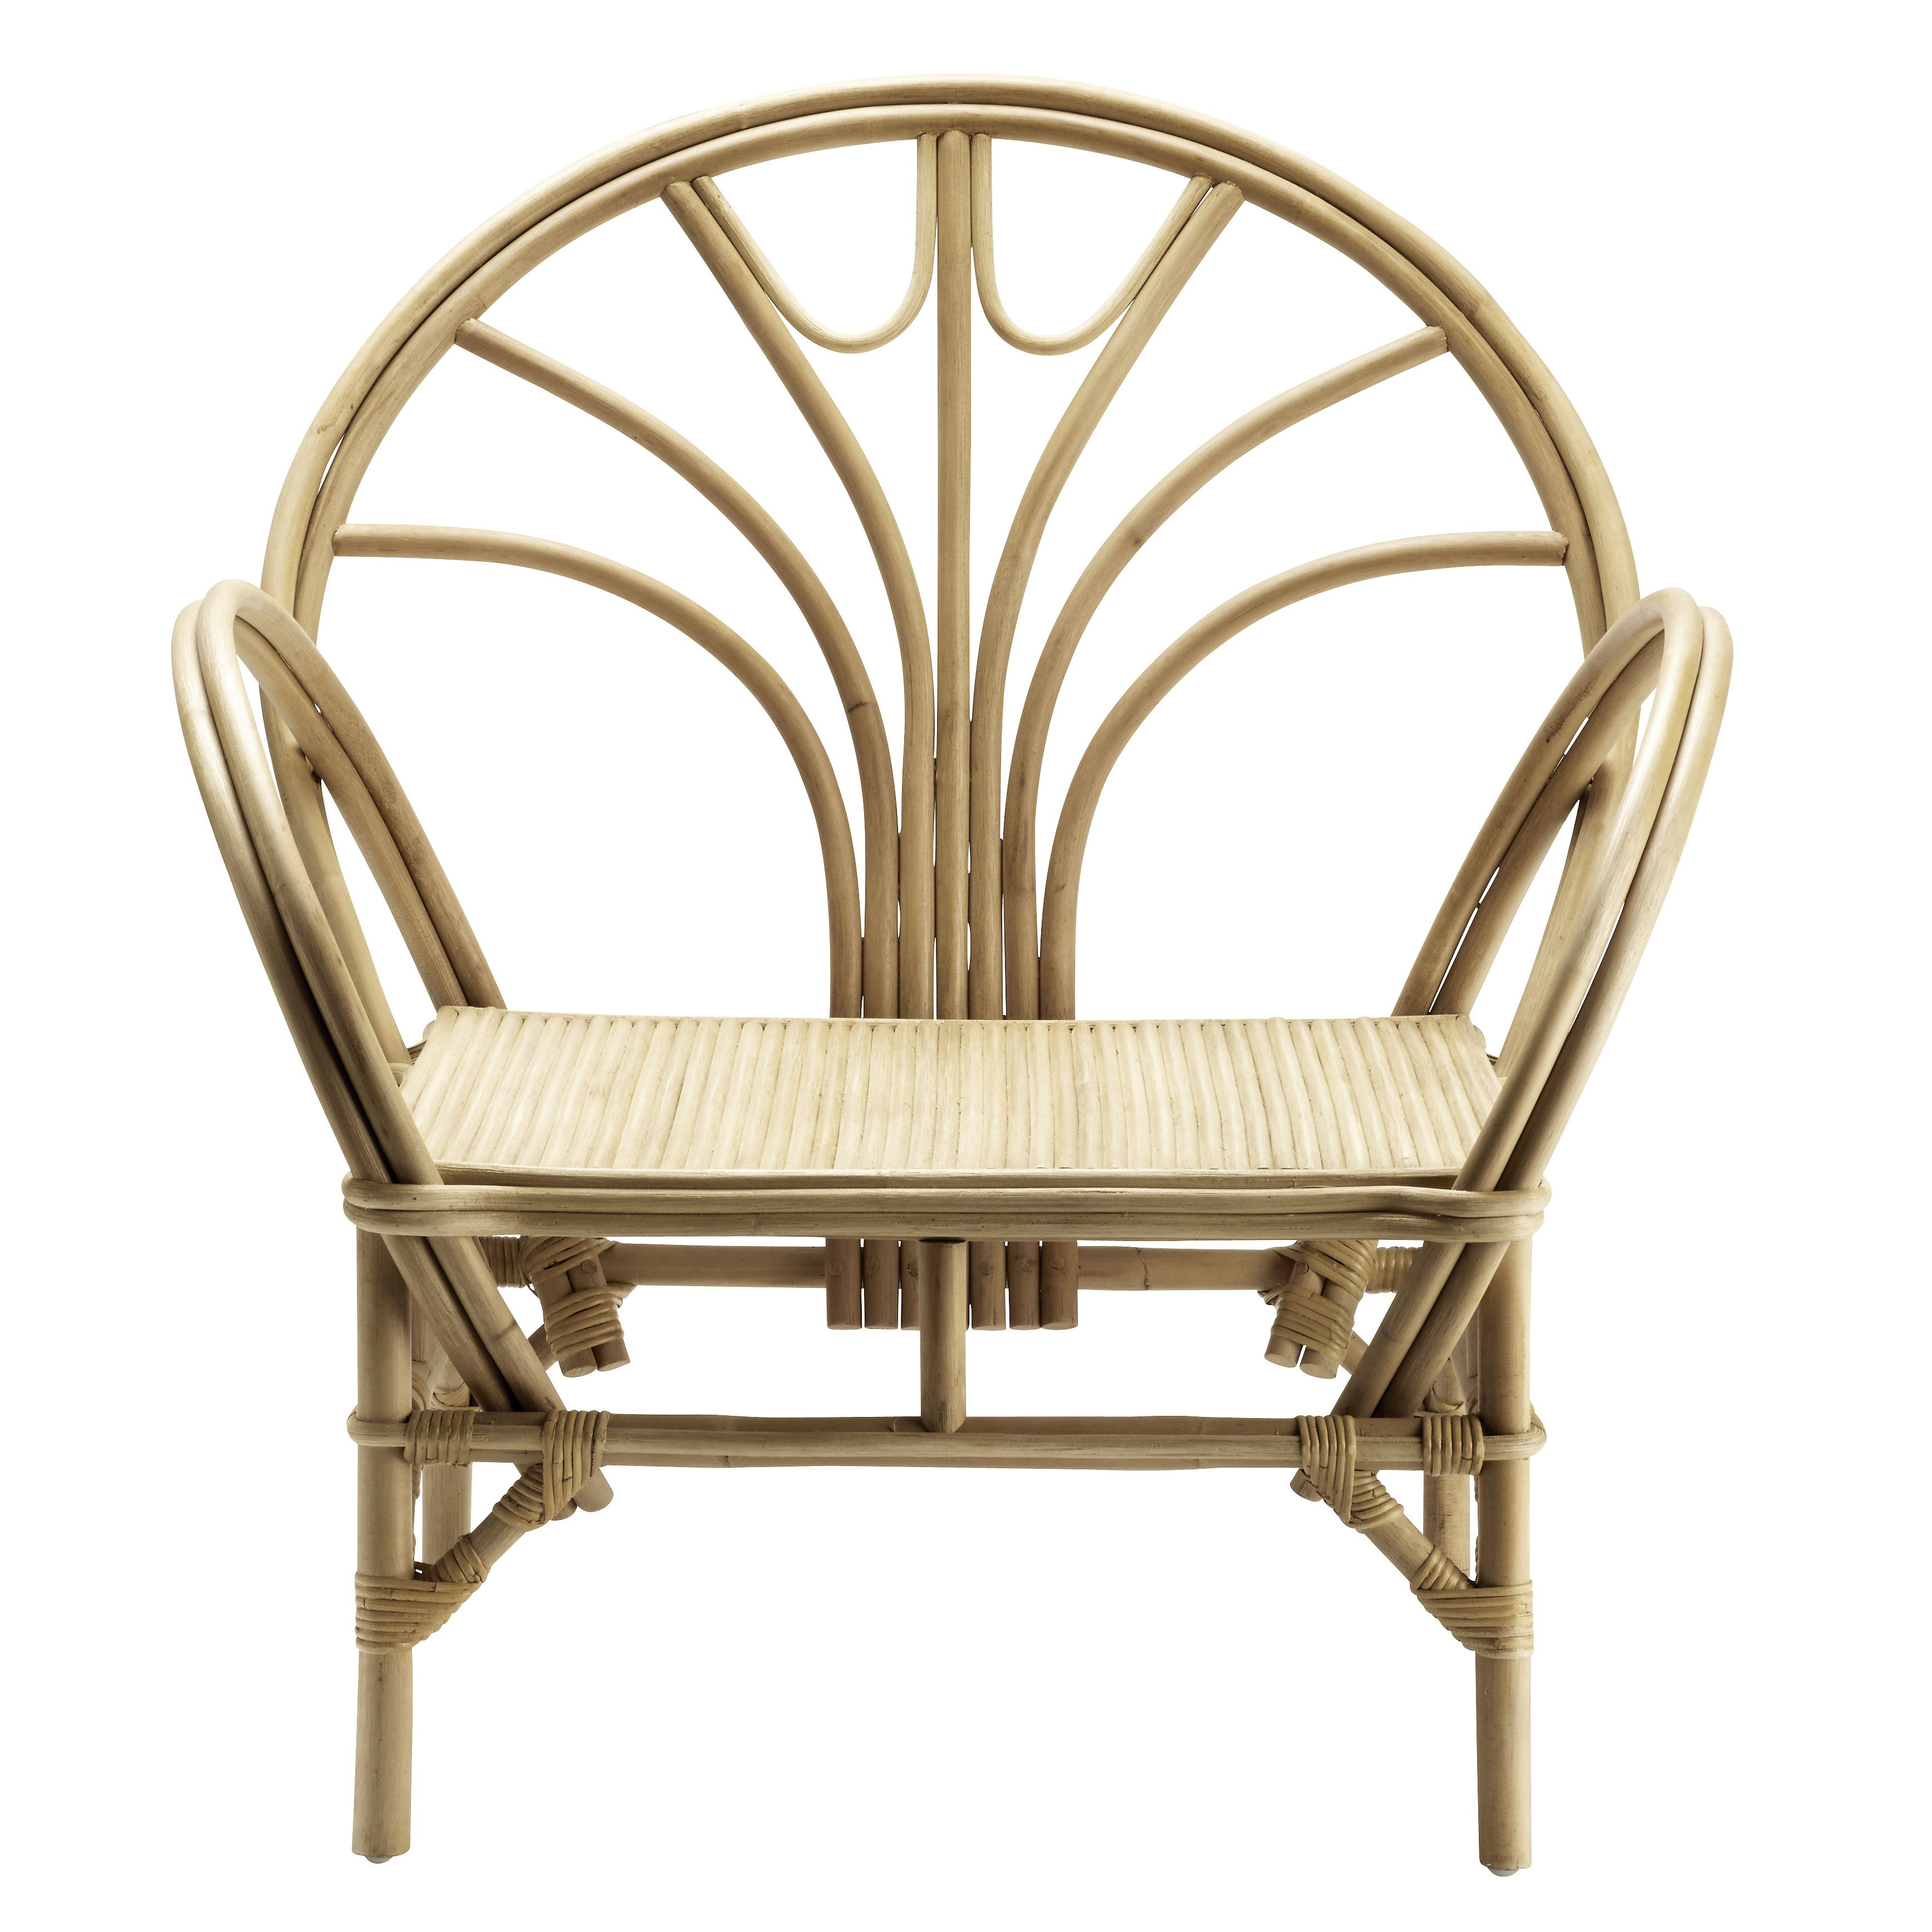 Lounge Chair In Rattan With Wide Round Shapes That Creates A Decorative Look And Gives The Perfect Boheme Feel The Avec Images Fauteuil Rotin Chaise Fauteuil Chaise Rotin